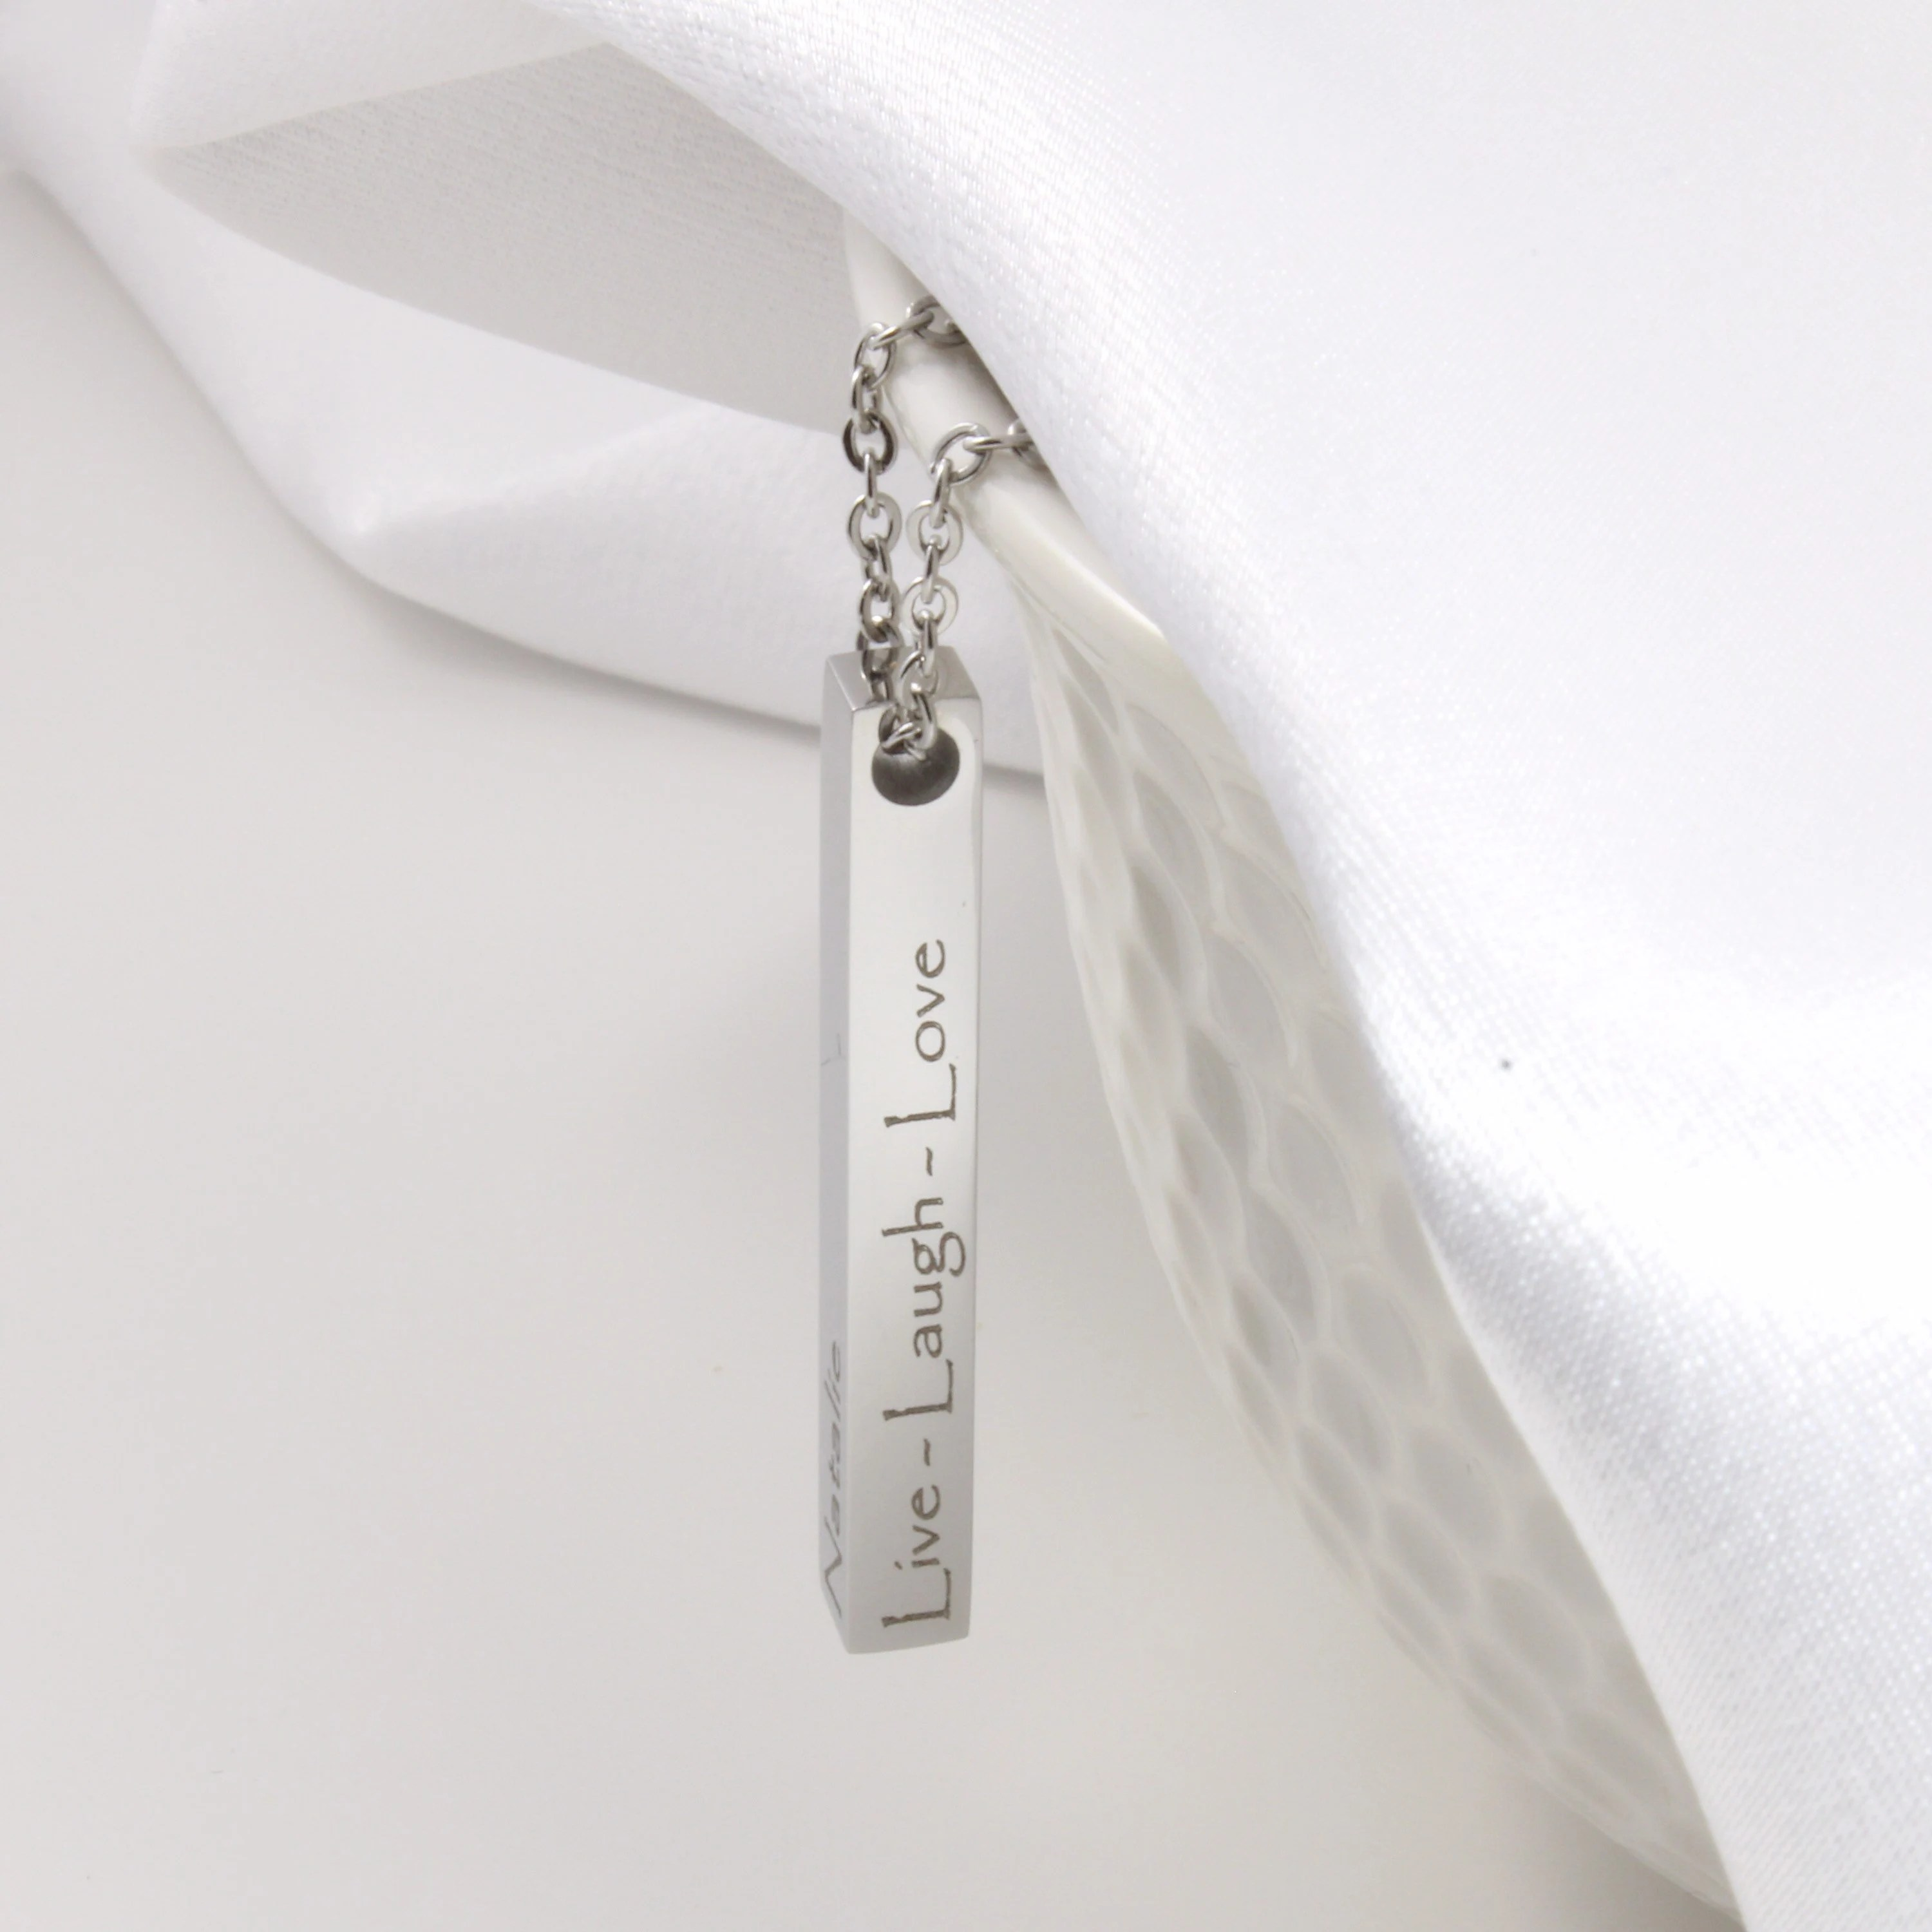 Personalized jewelry bar necklace custom laser engraved image 5